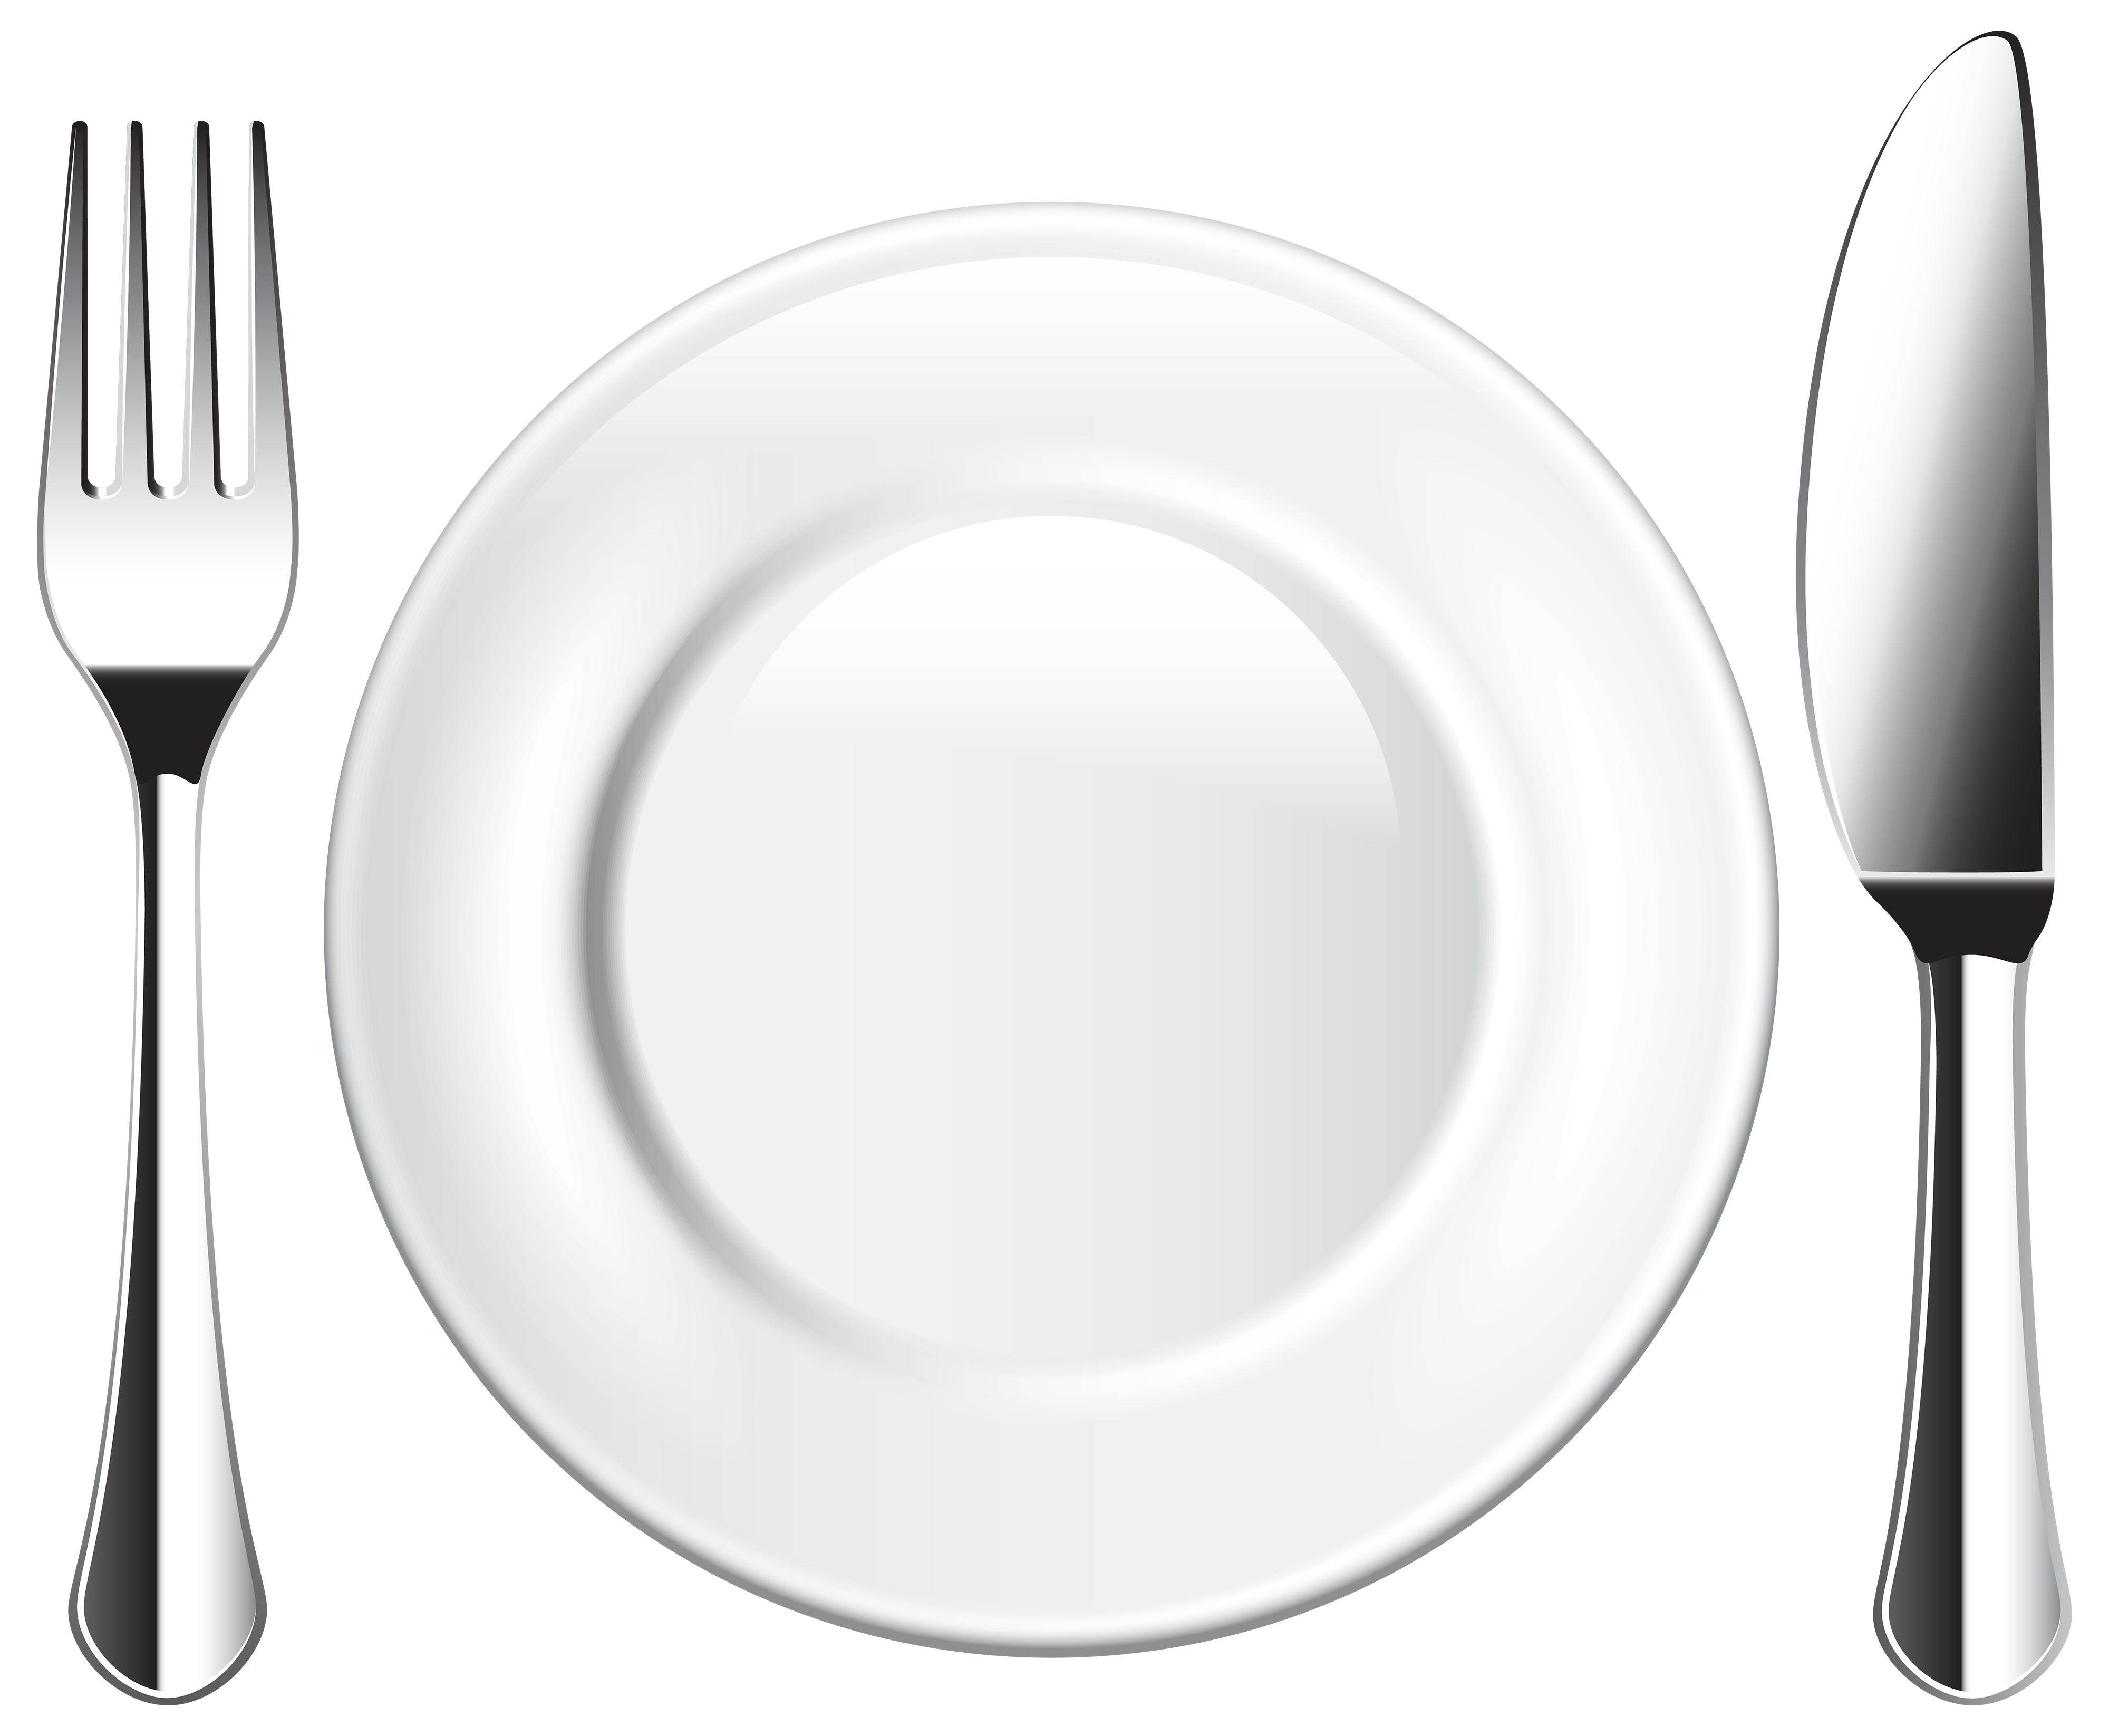 Plate knife and png. White clipart fork